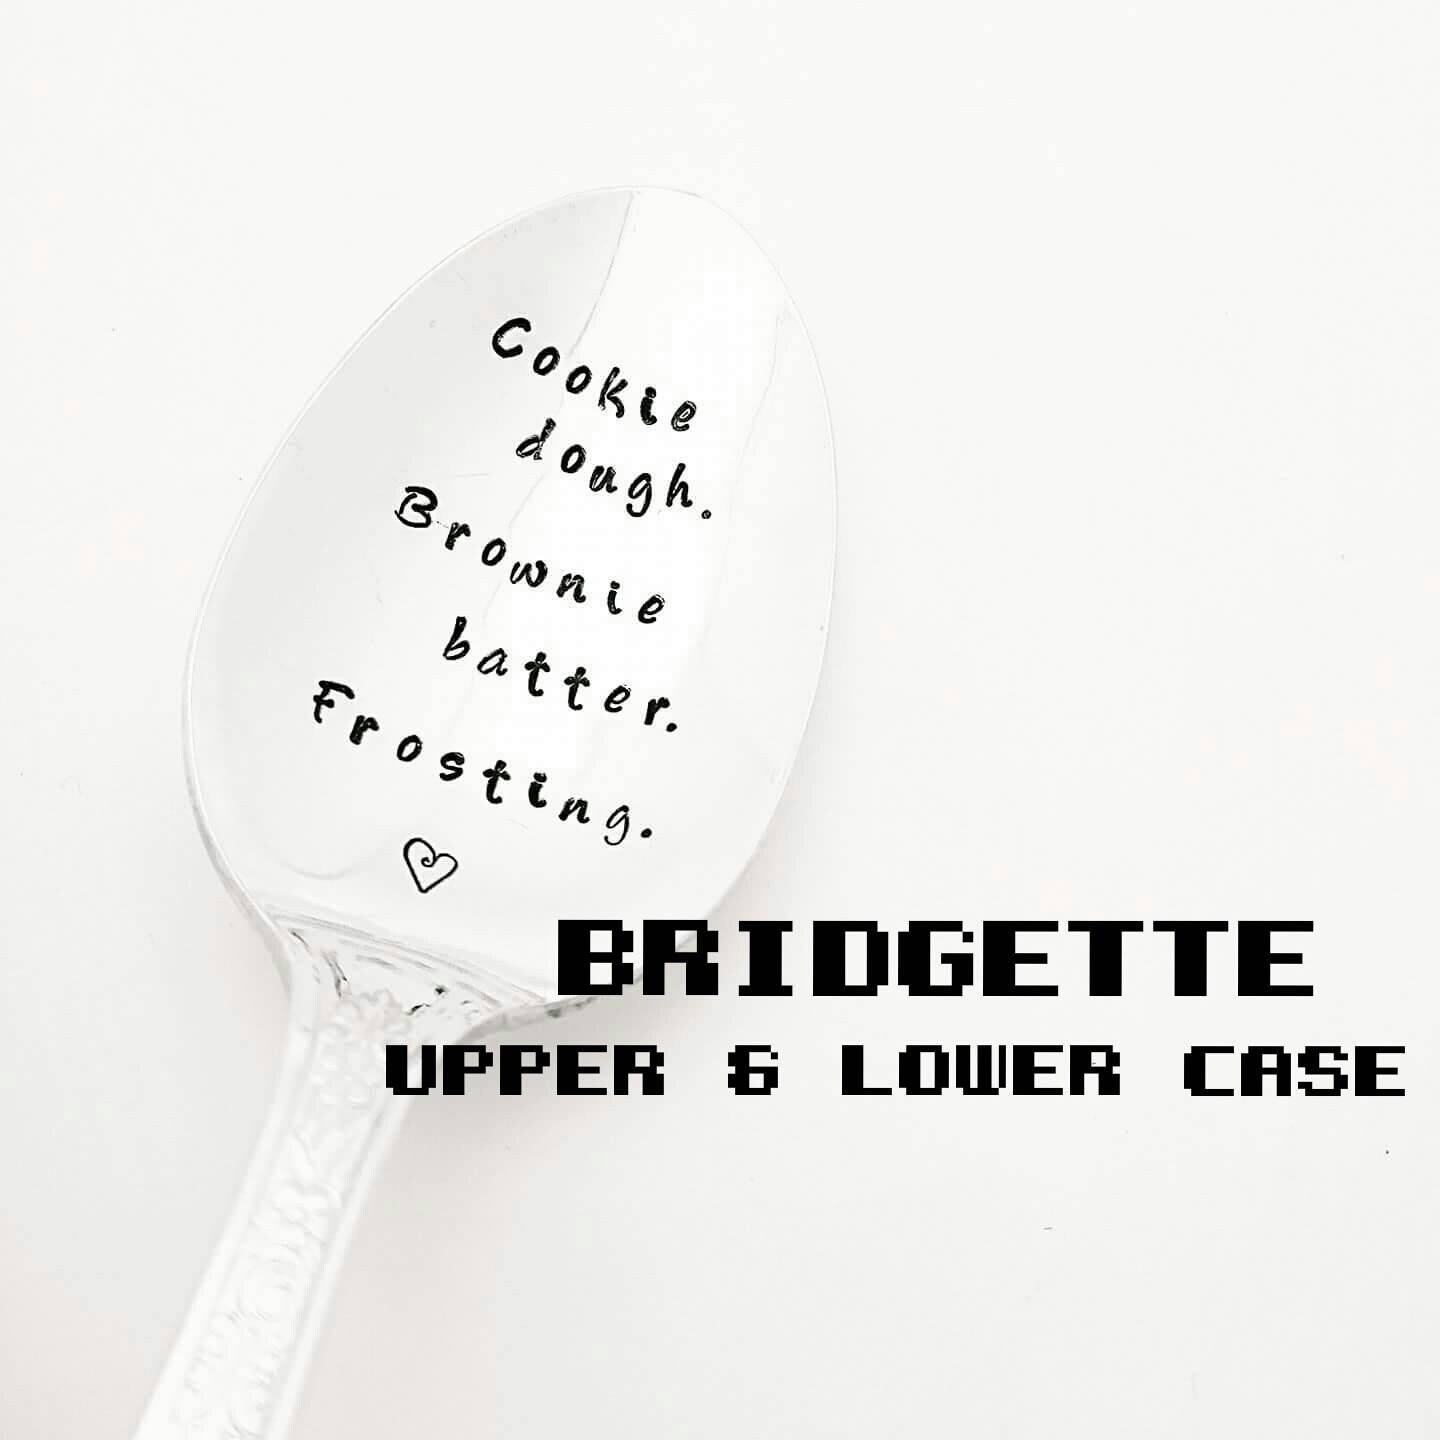 Customized Spoon / Personalized Spoon / Best Seller on Etsy / image 5